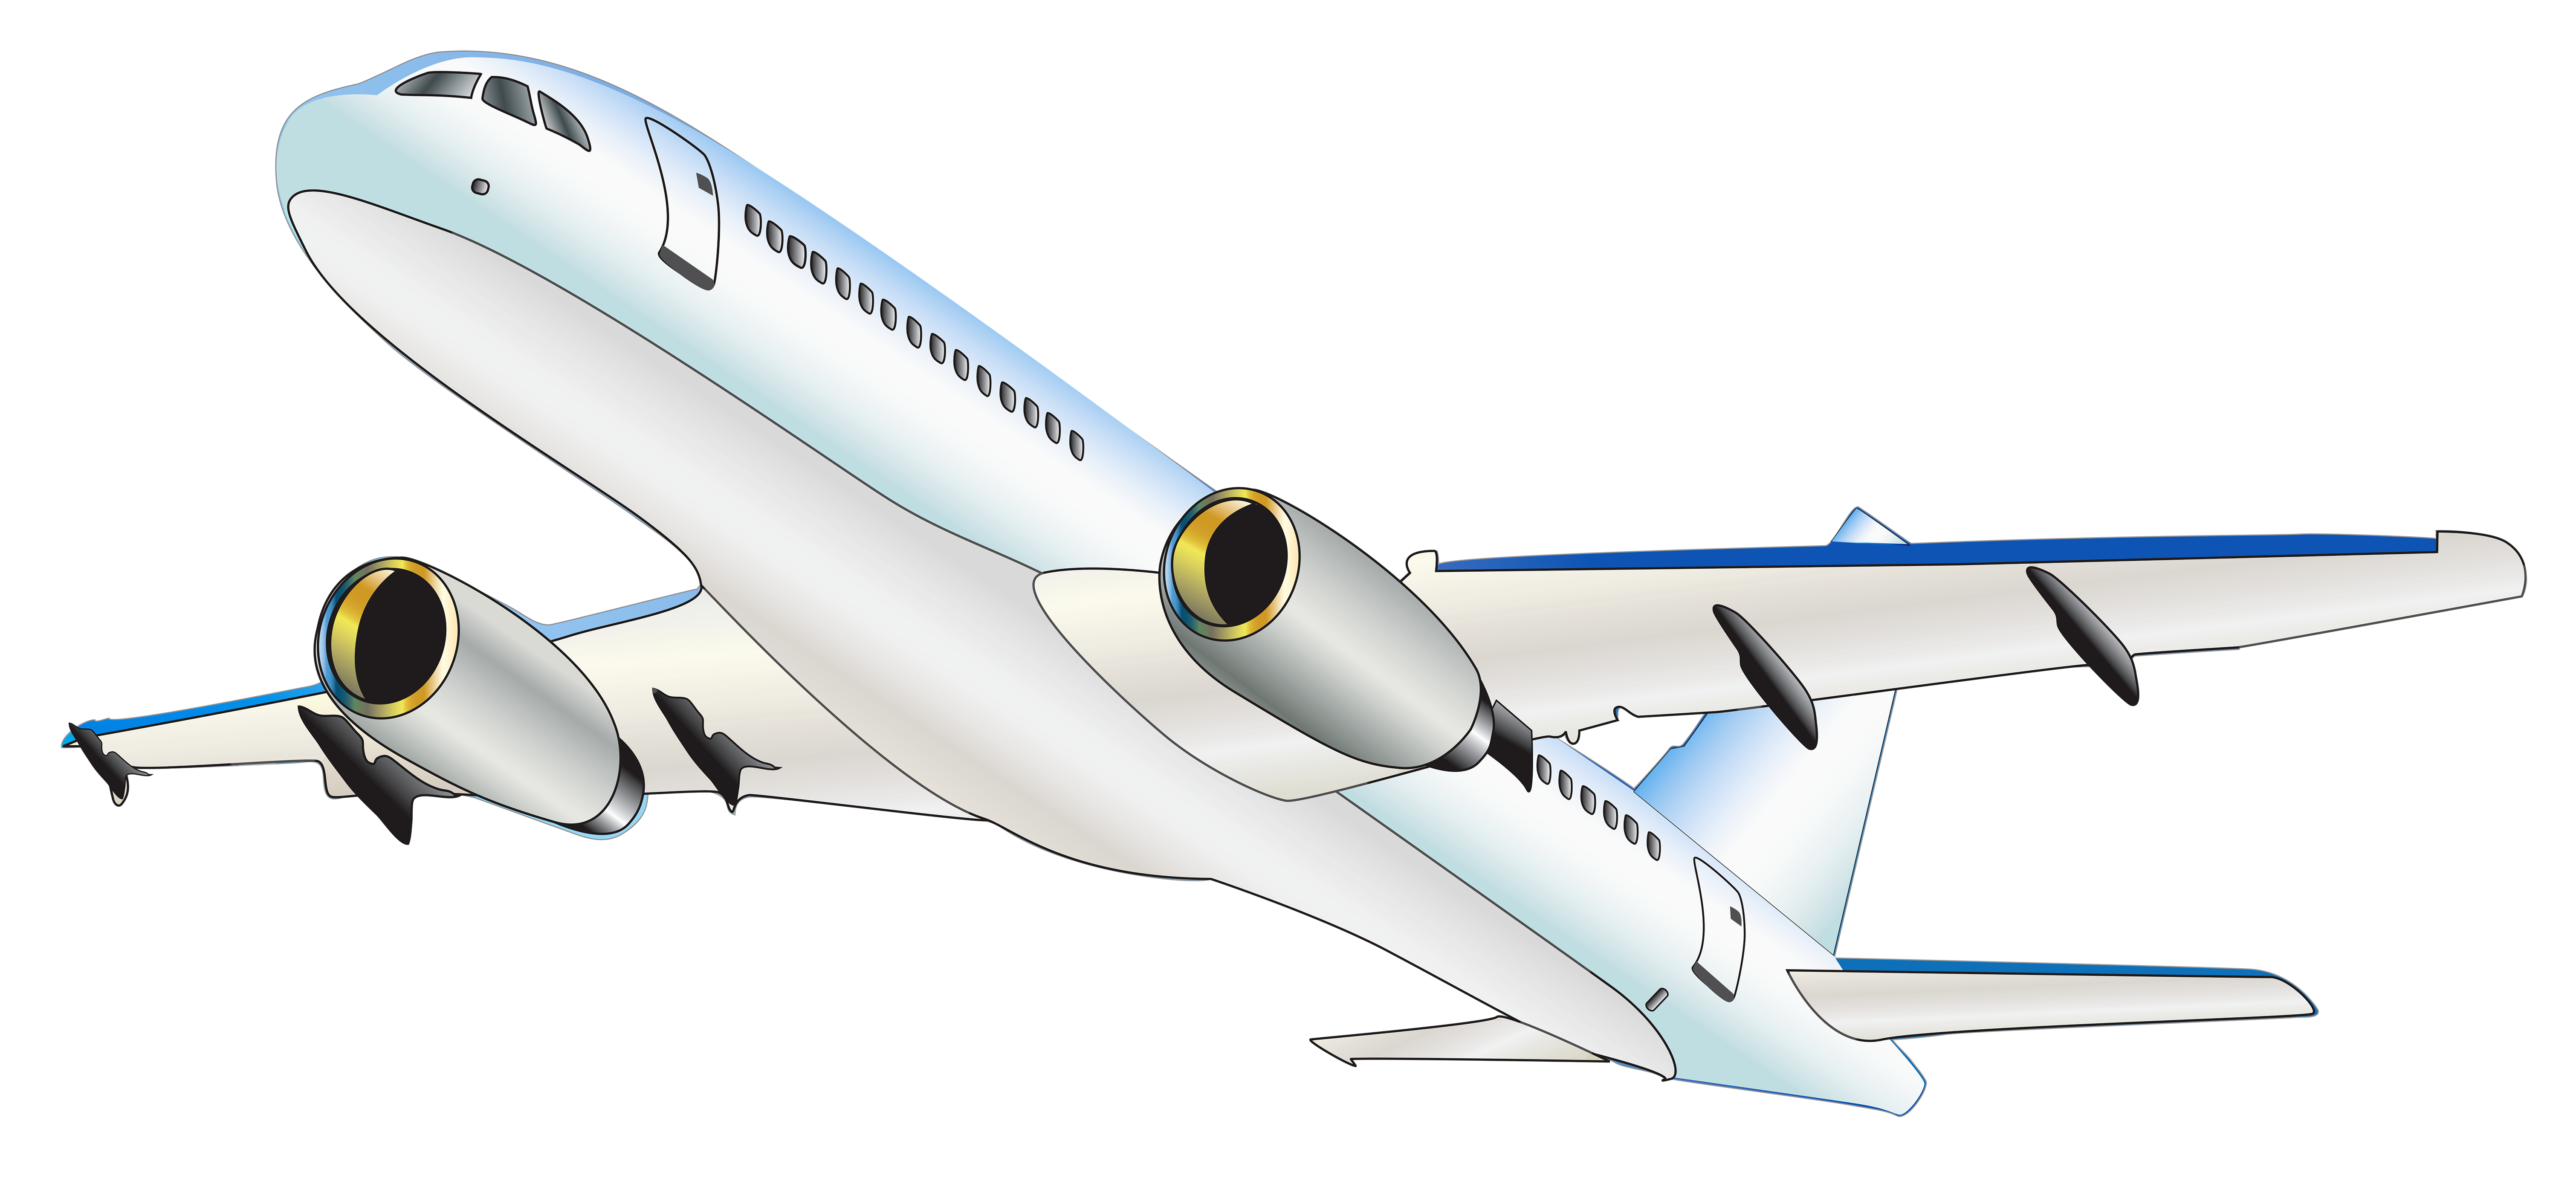 Transparent gallery yopriceville high. Name clipart airplane